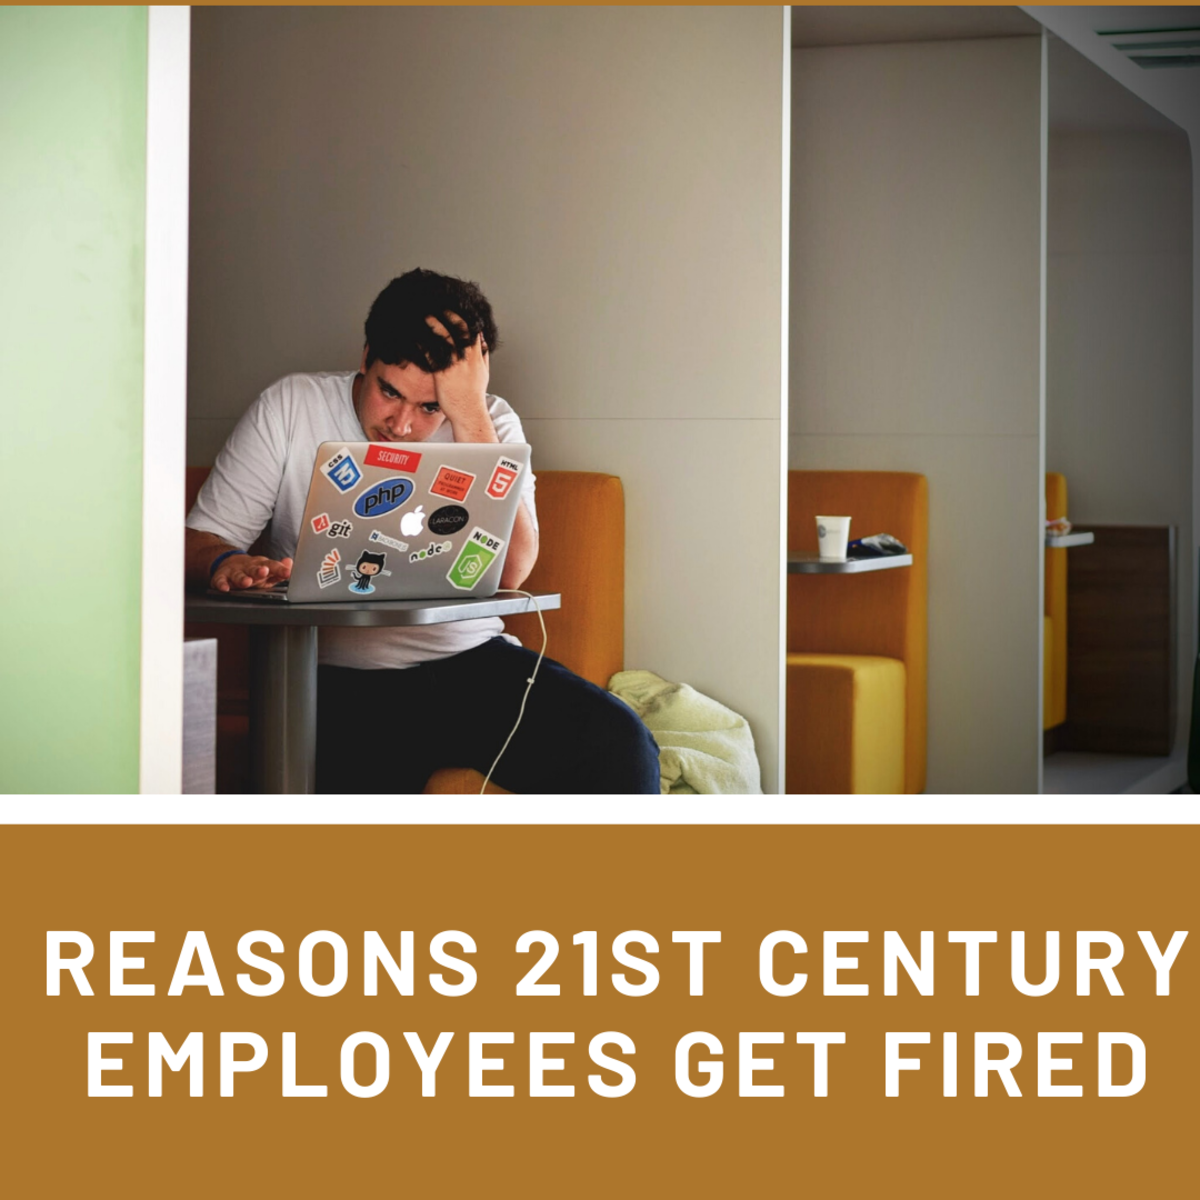 There are many reasons why 21st century employees get fired. Read on to learn more.